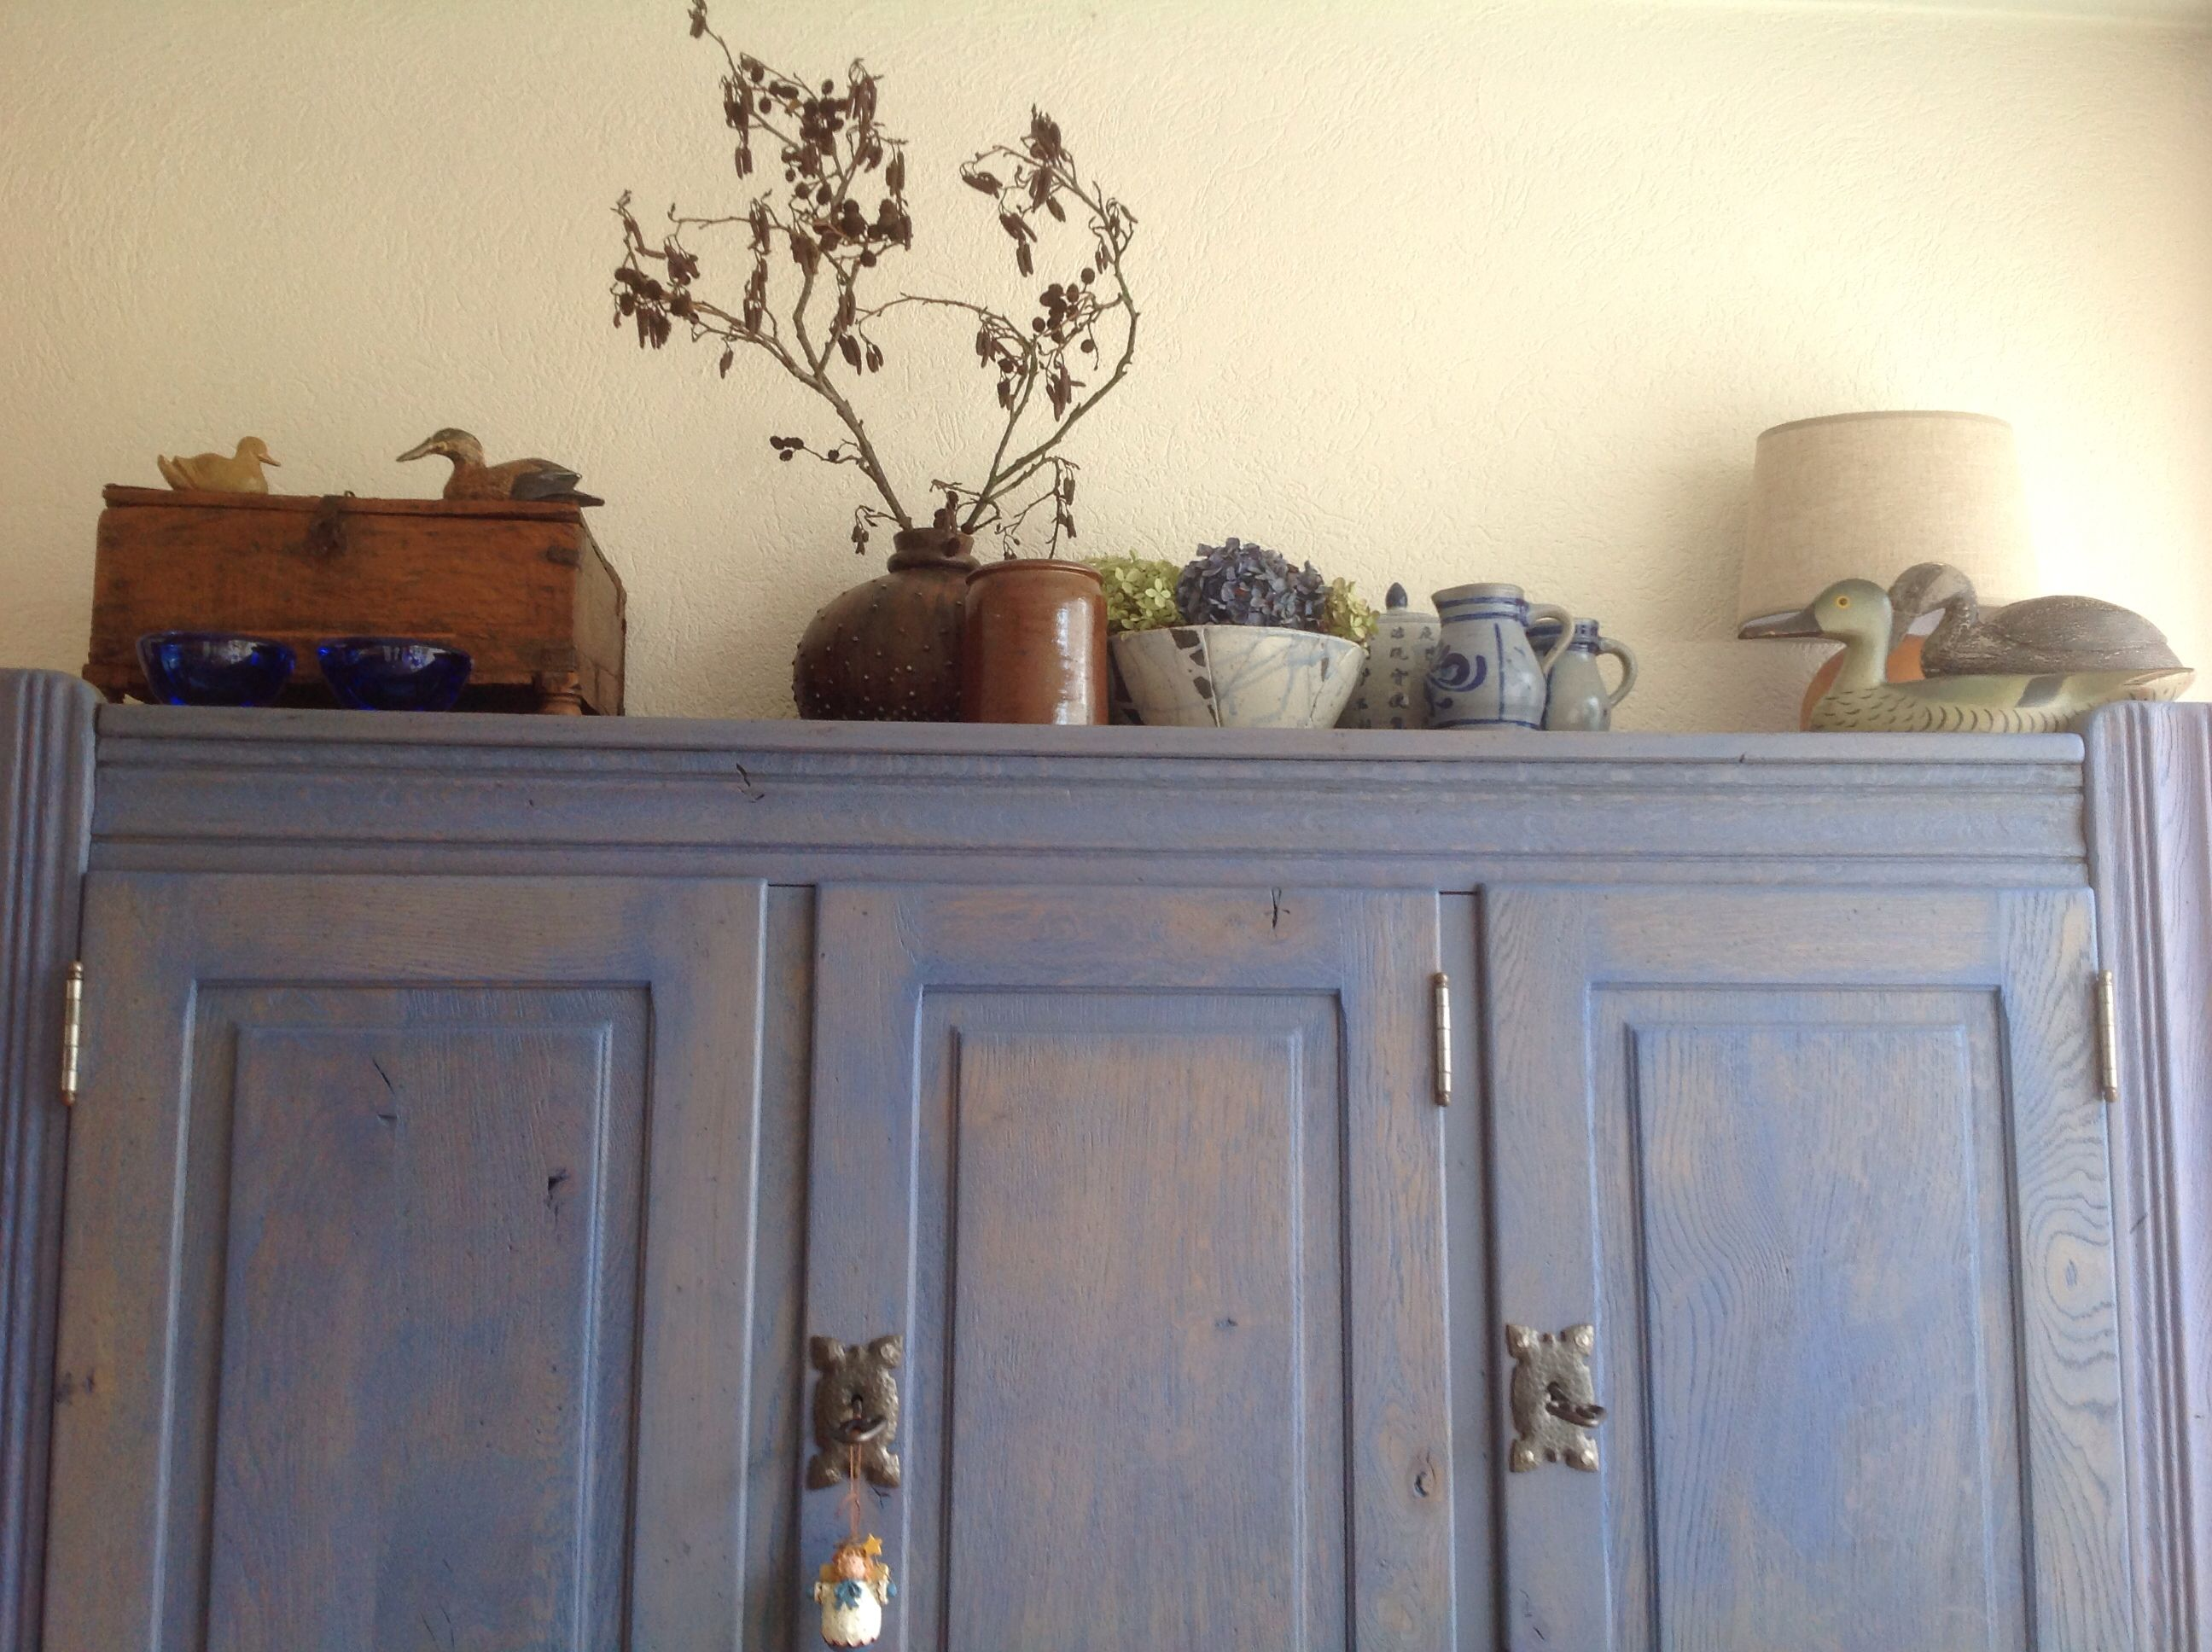 Decoratie bovenop de kast over cabinet decor